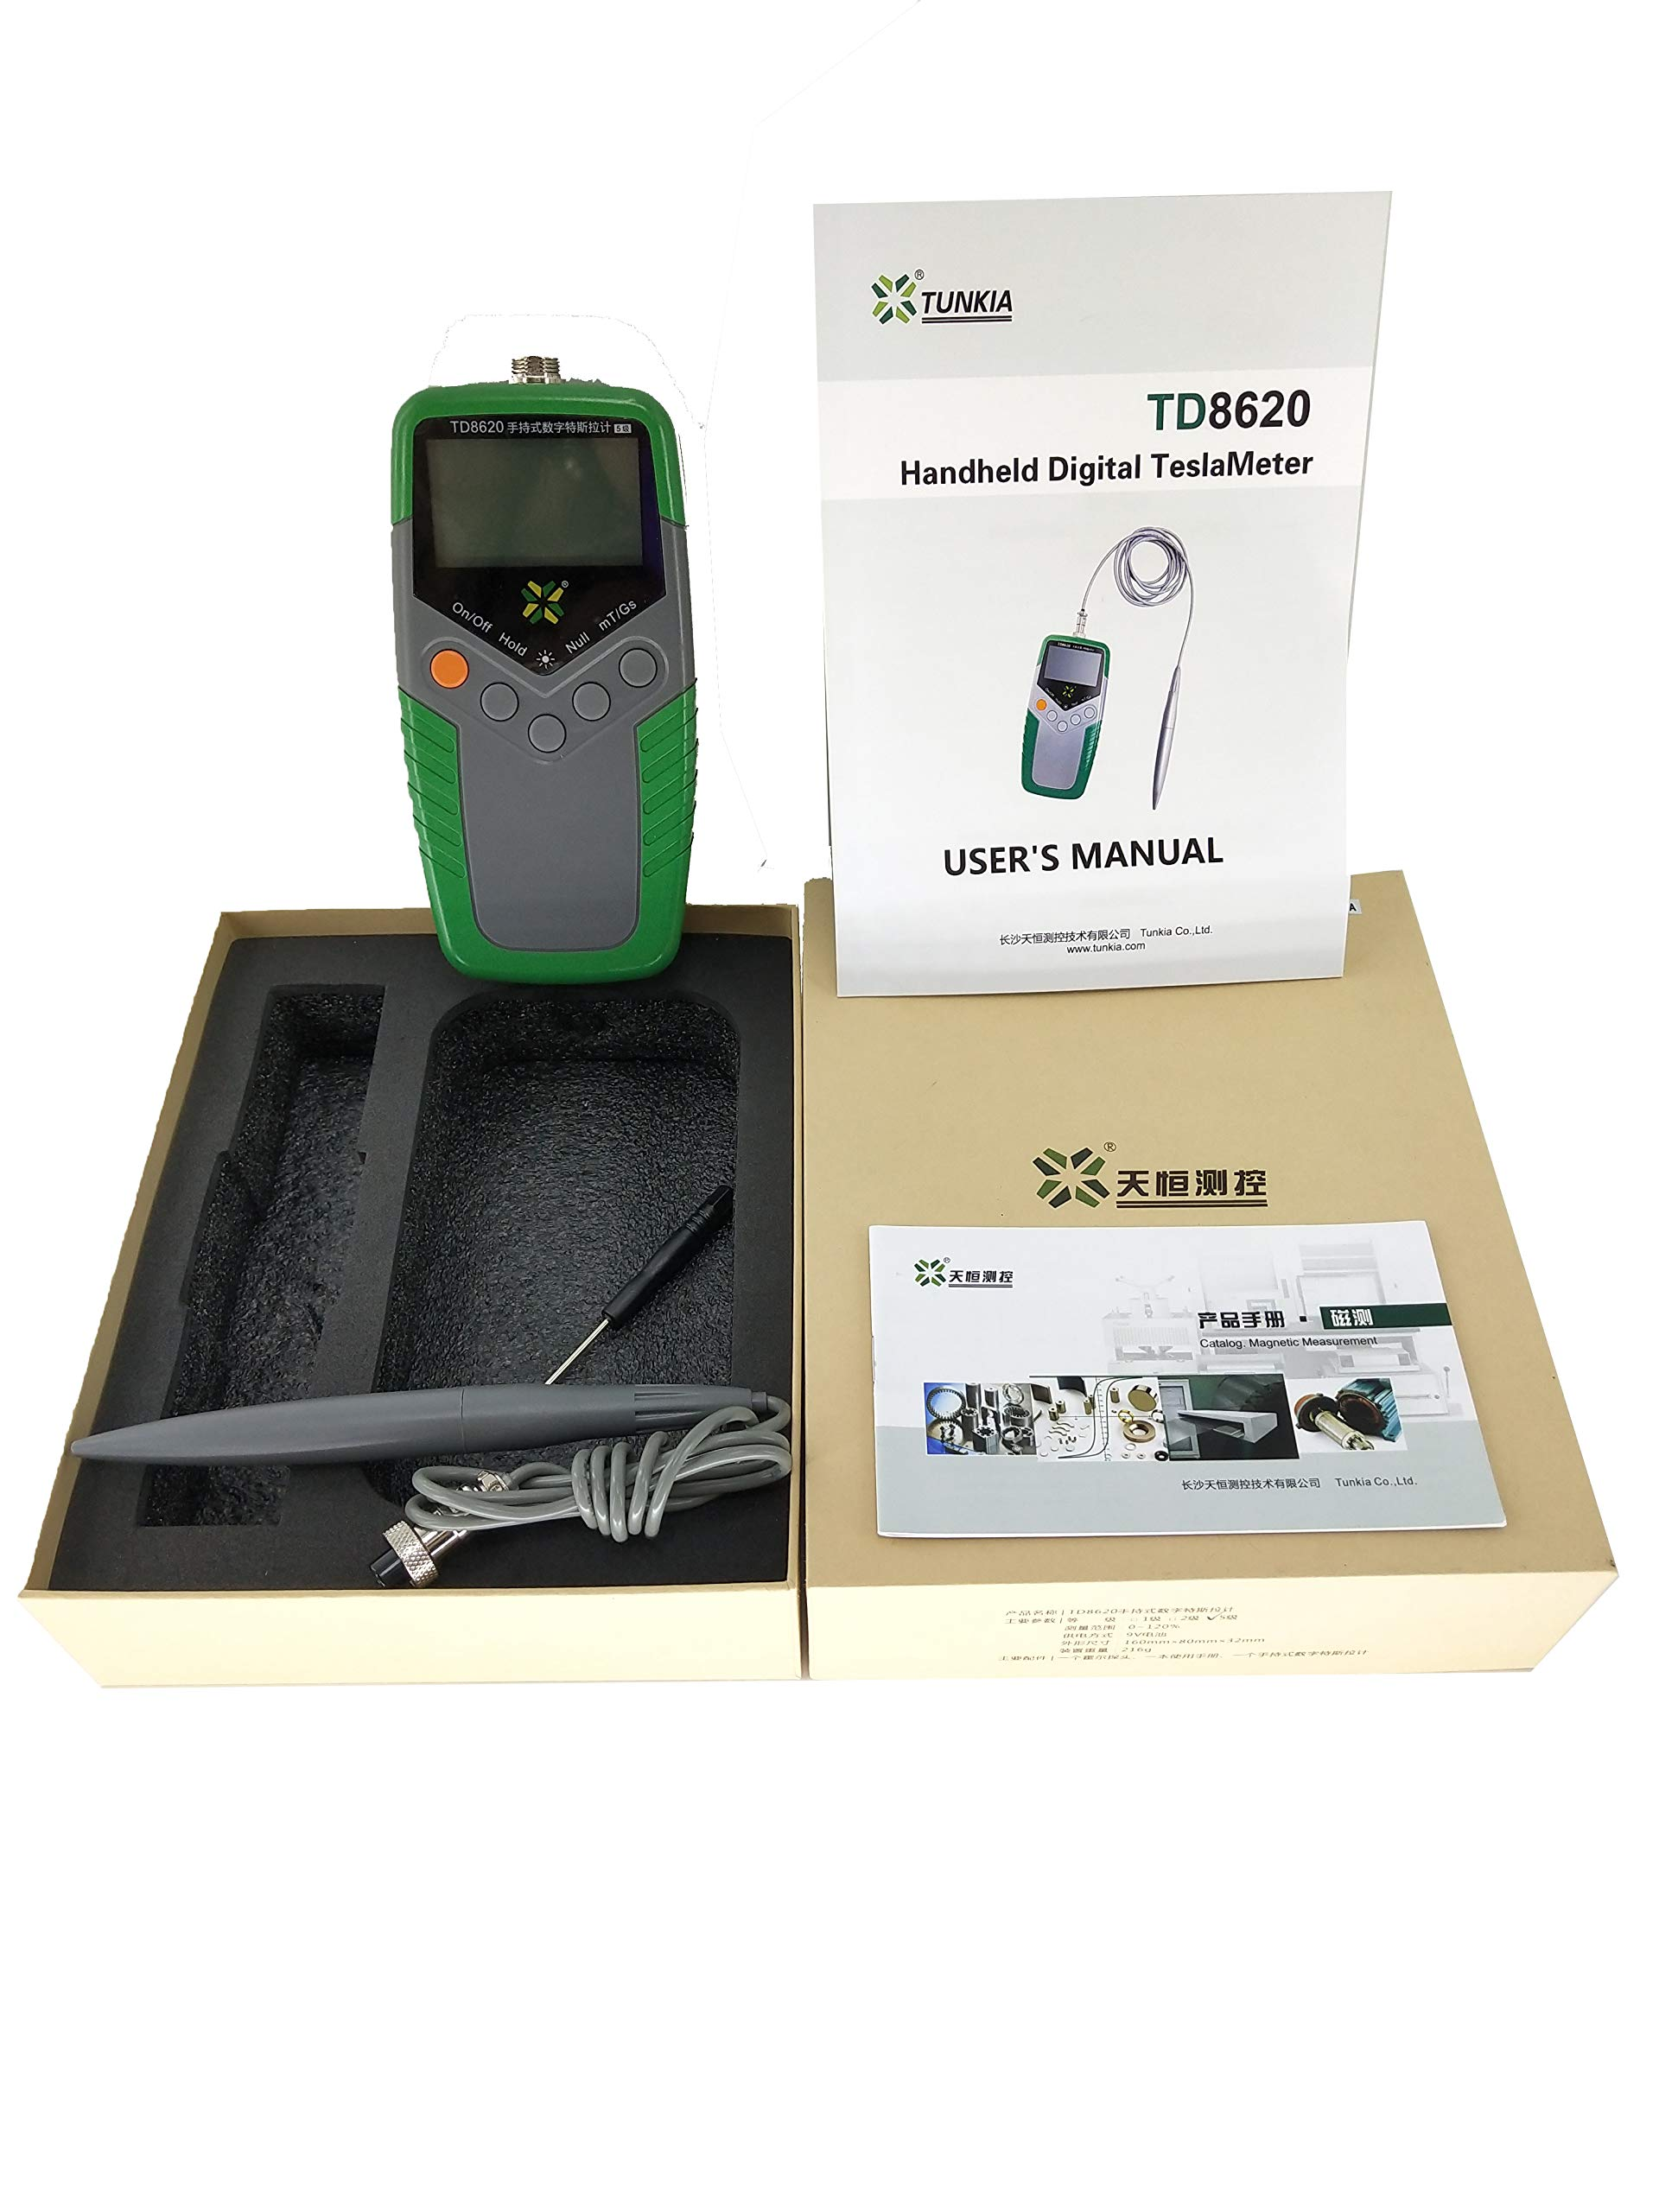 YFYIQI TD8620-5 Gauss Meter Tesla Meter Permanent Magnet Gaussmeter Surface Magnetic Field Tester with 5% Accuracy